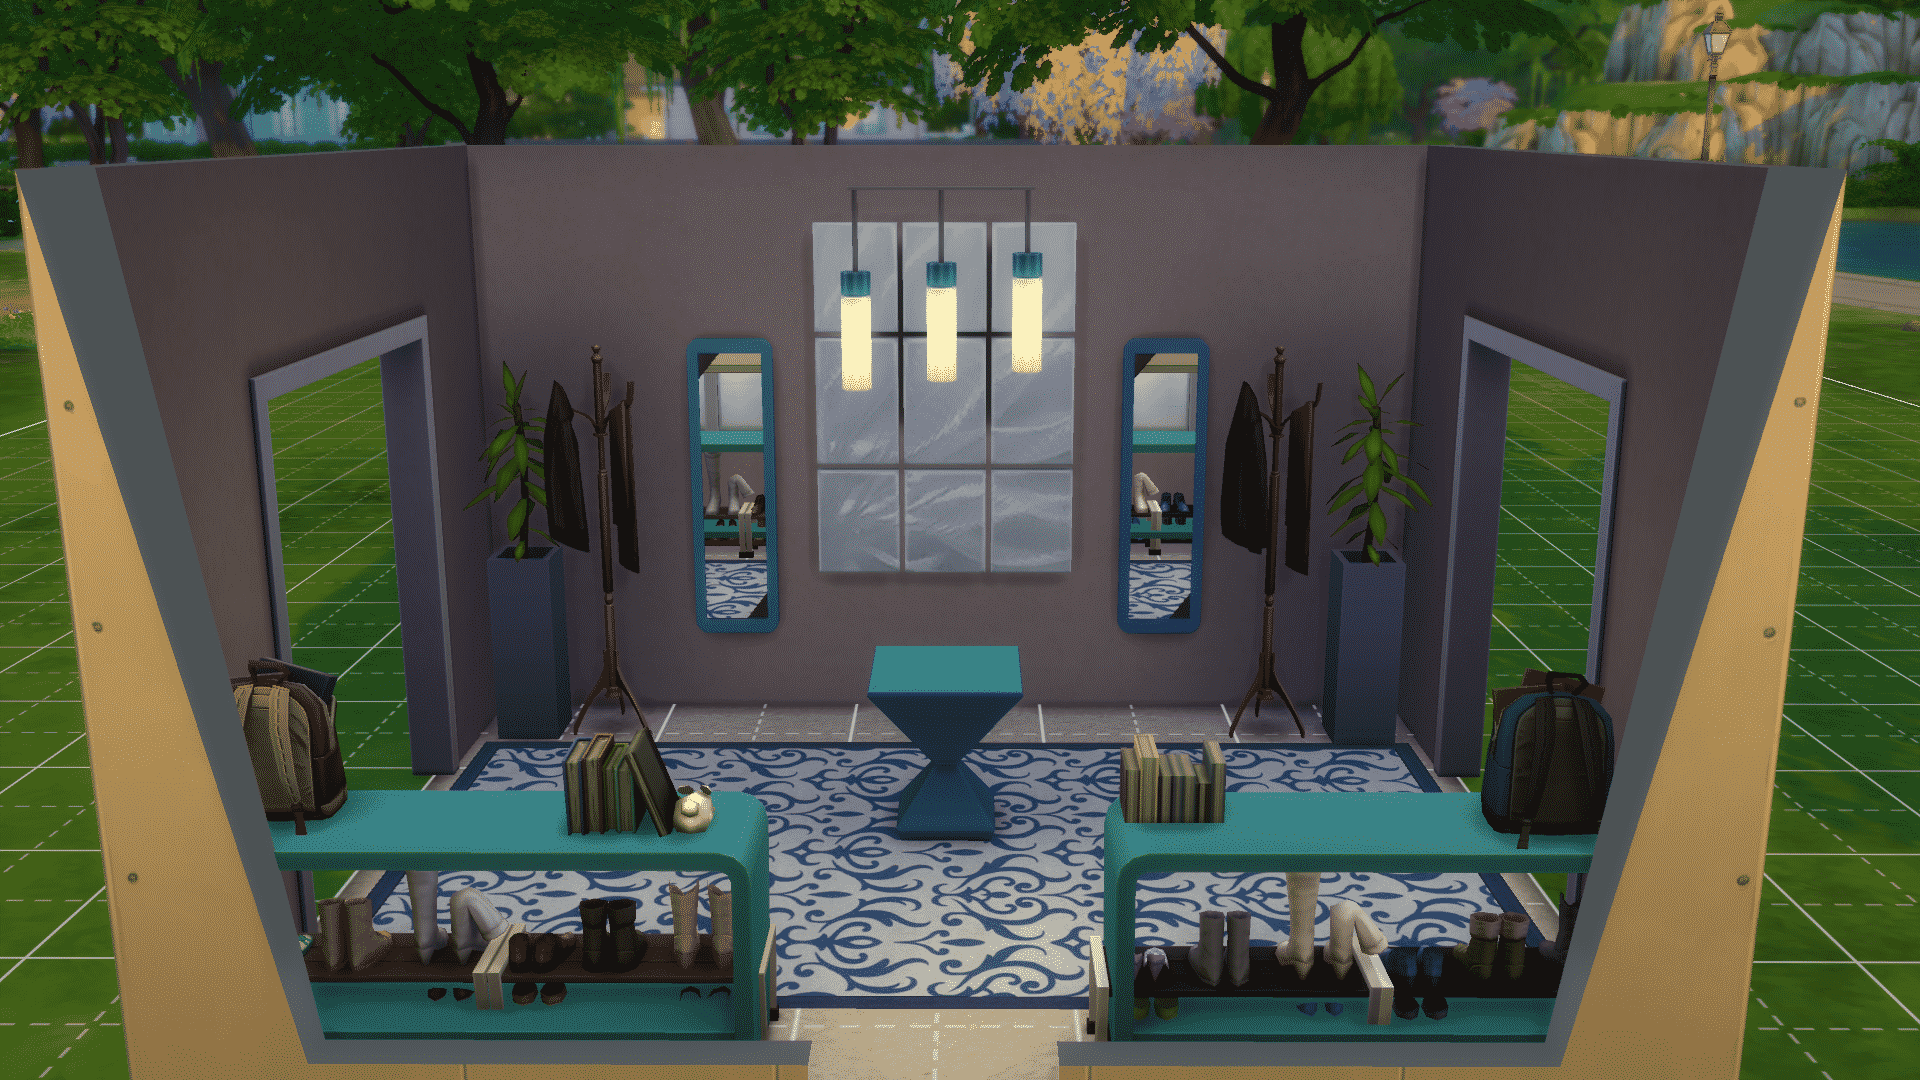 The sims 4 interior design guide